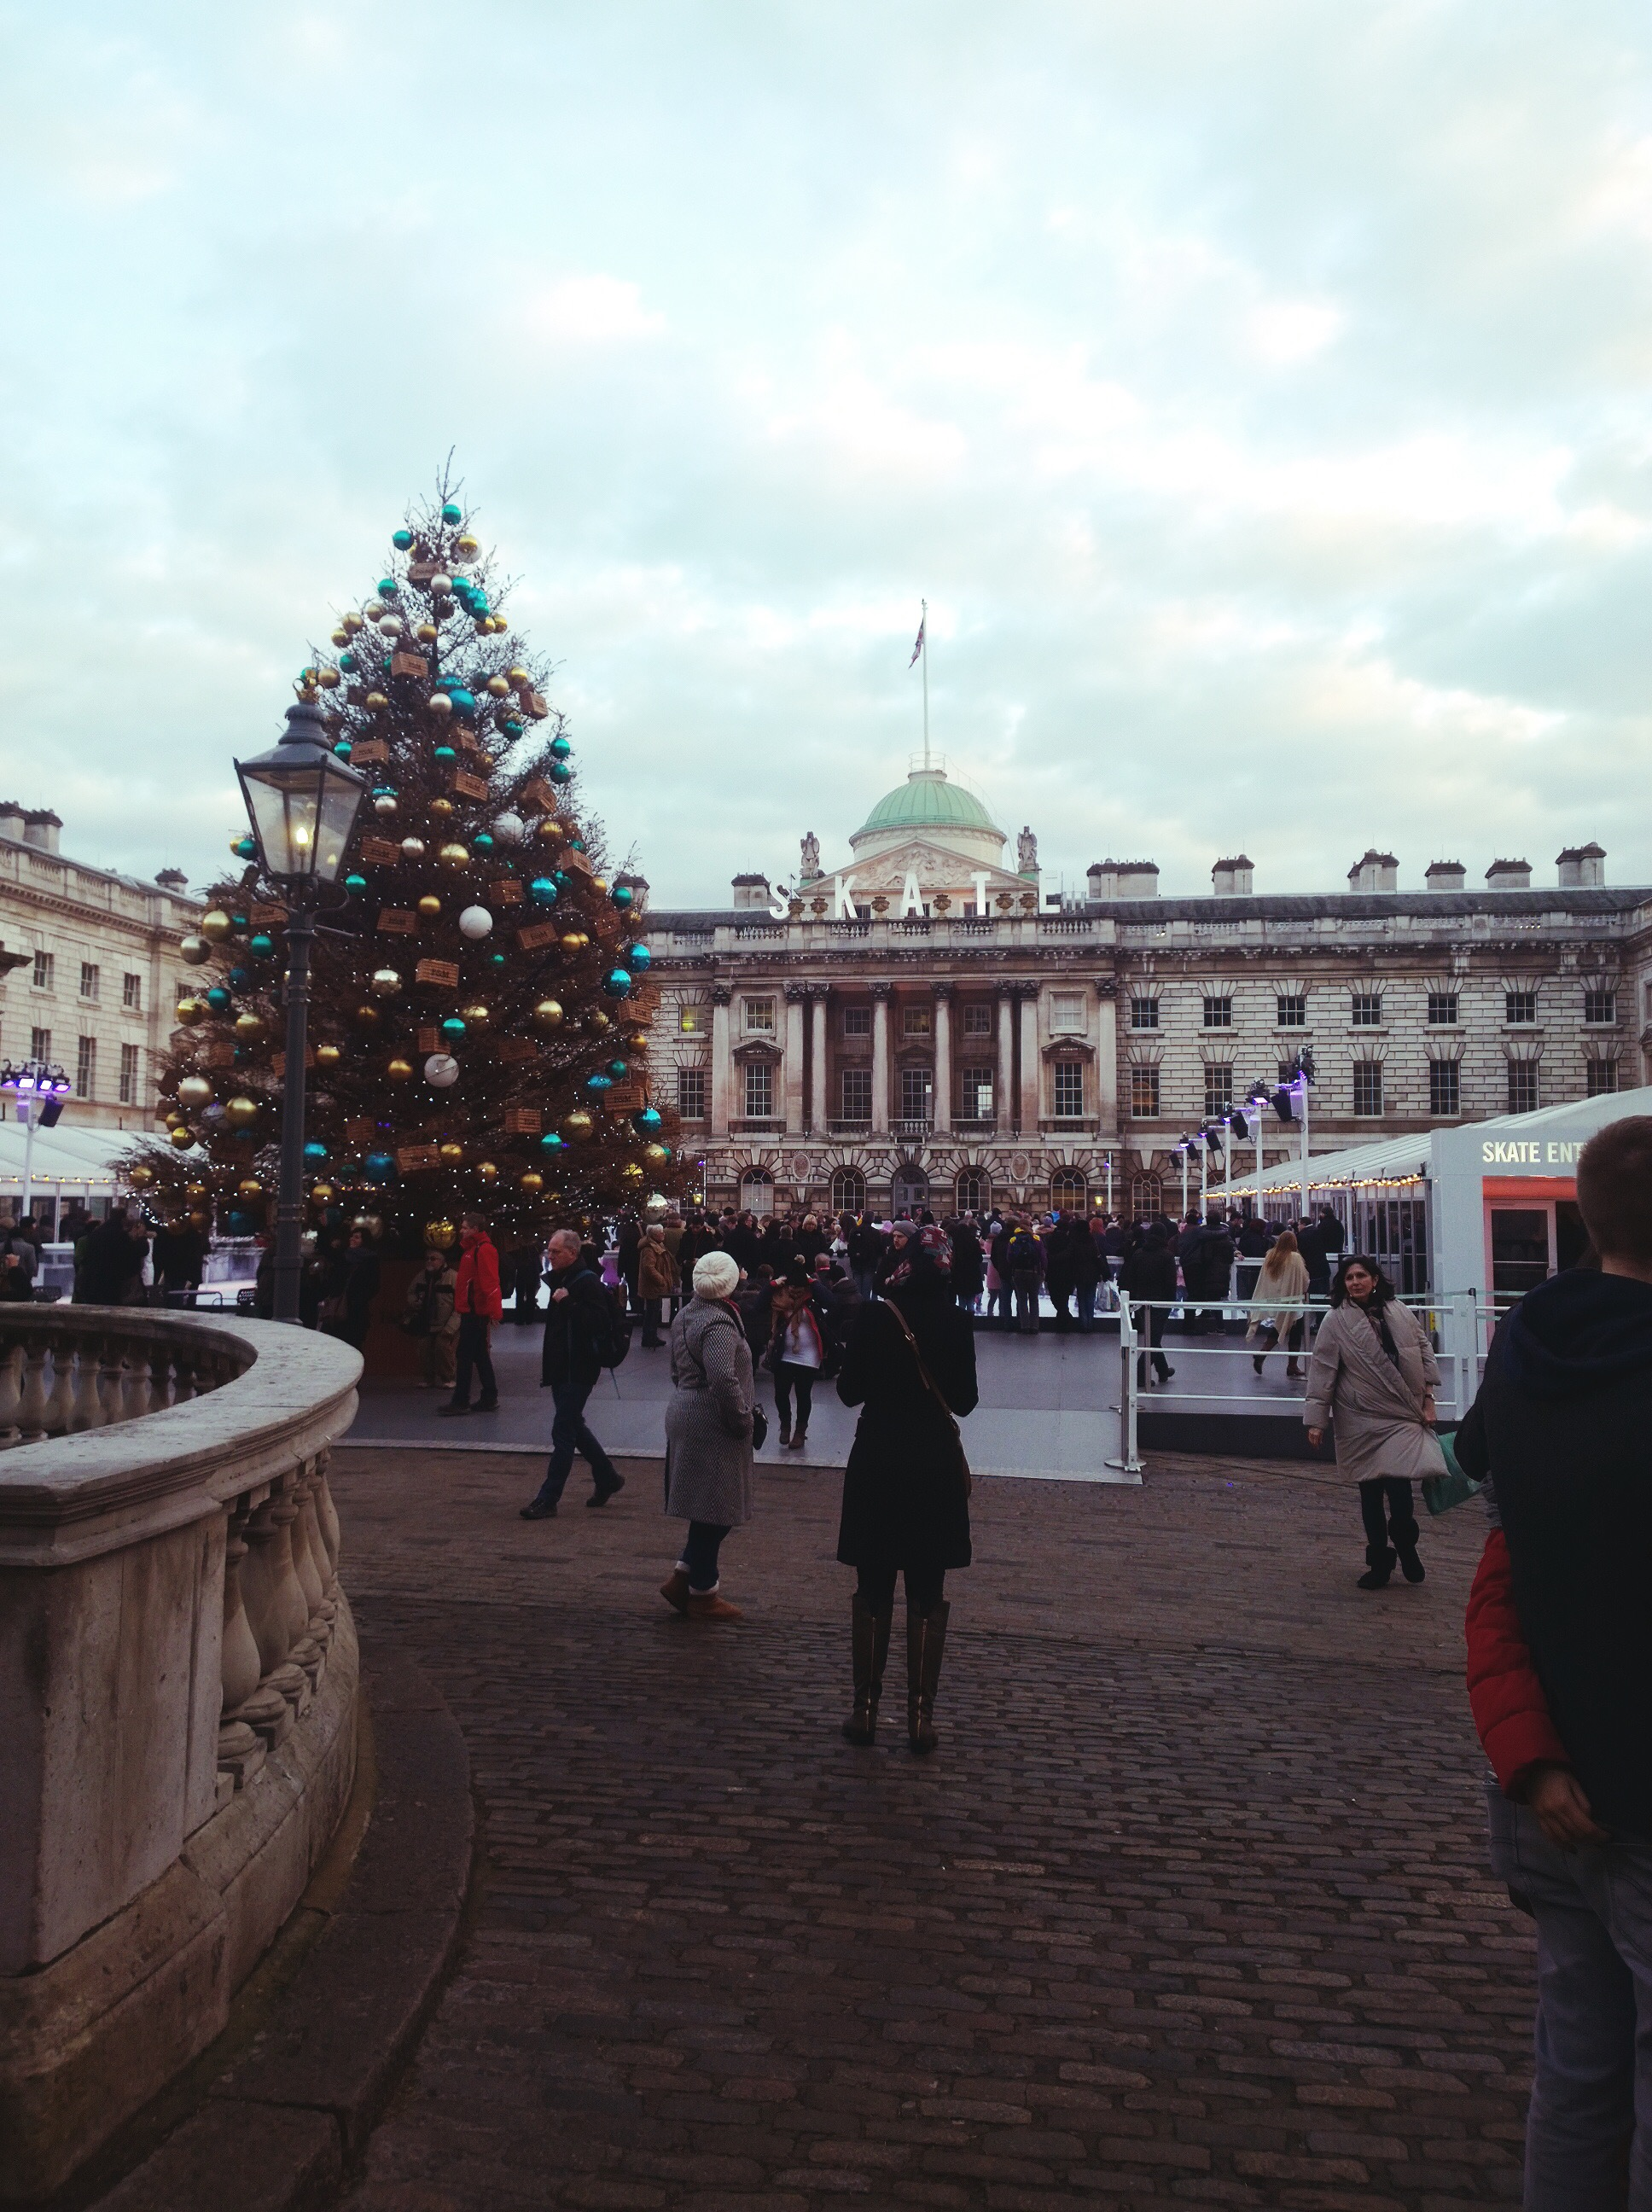 somerset house ice rink winter